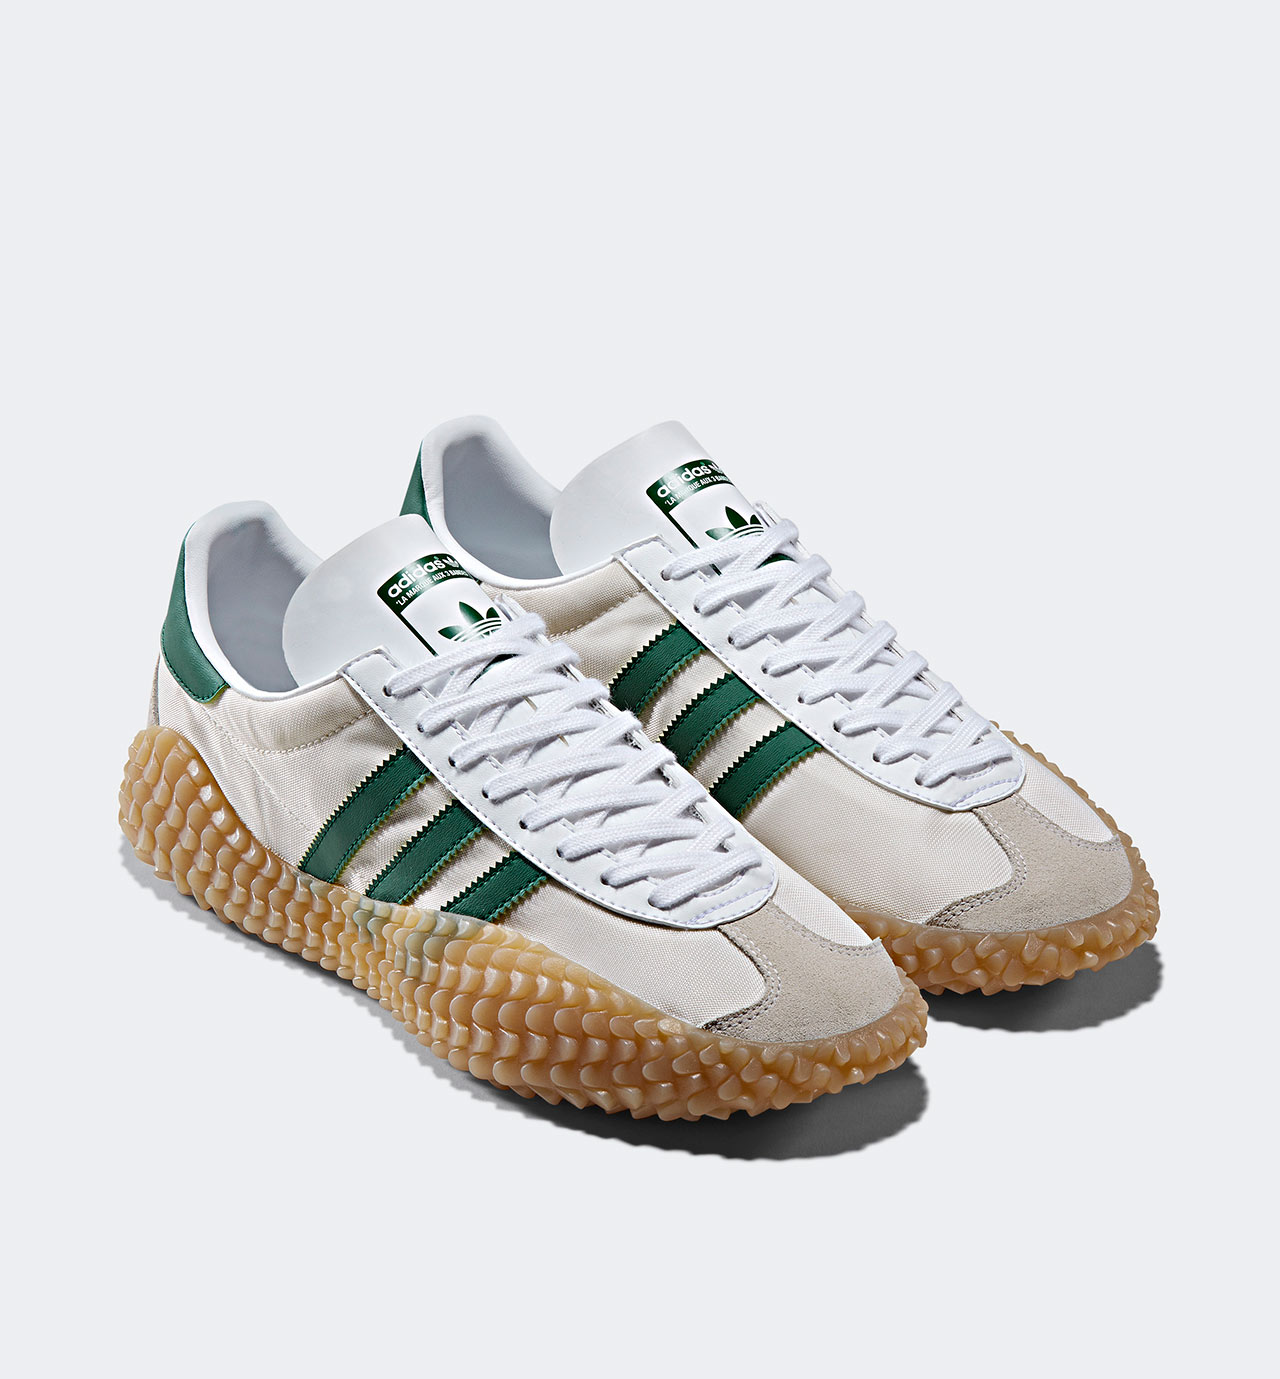 4d827ea90ac30 The Adidas  Never Made  Pack Imbues the Past with the Present